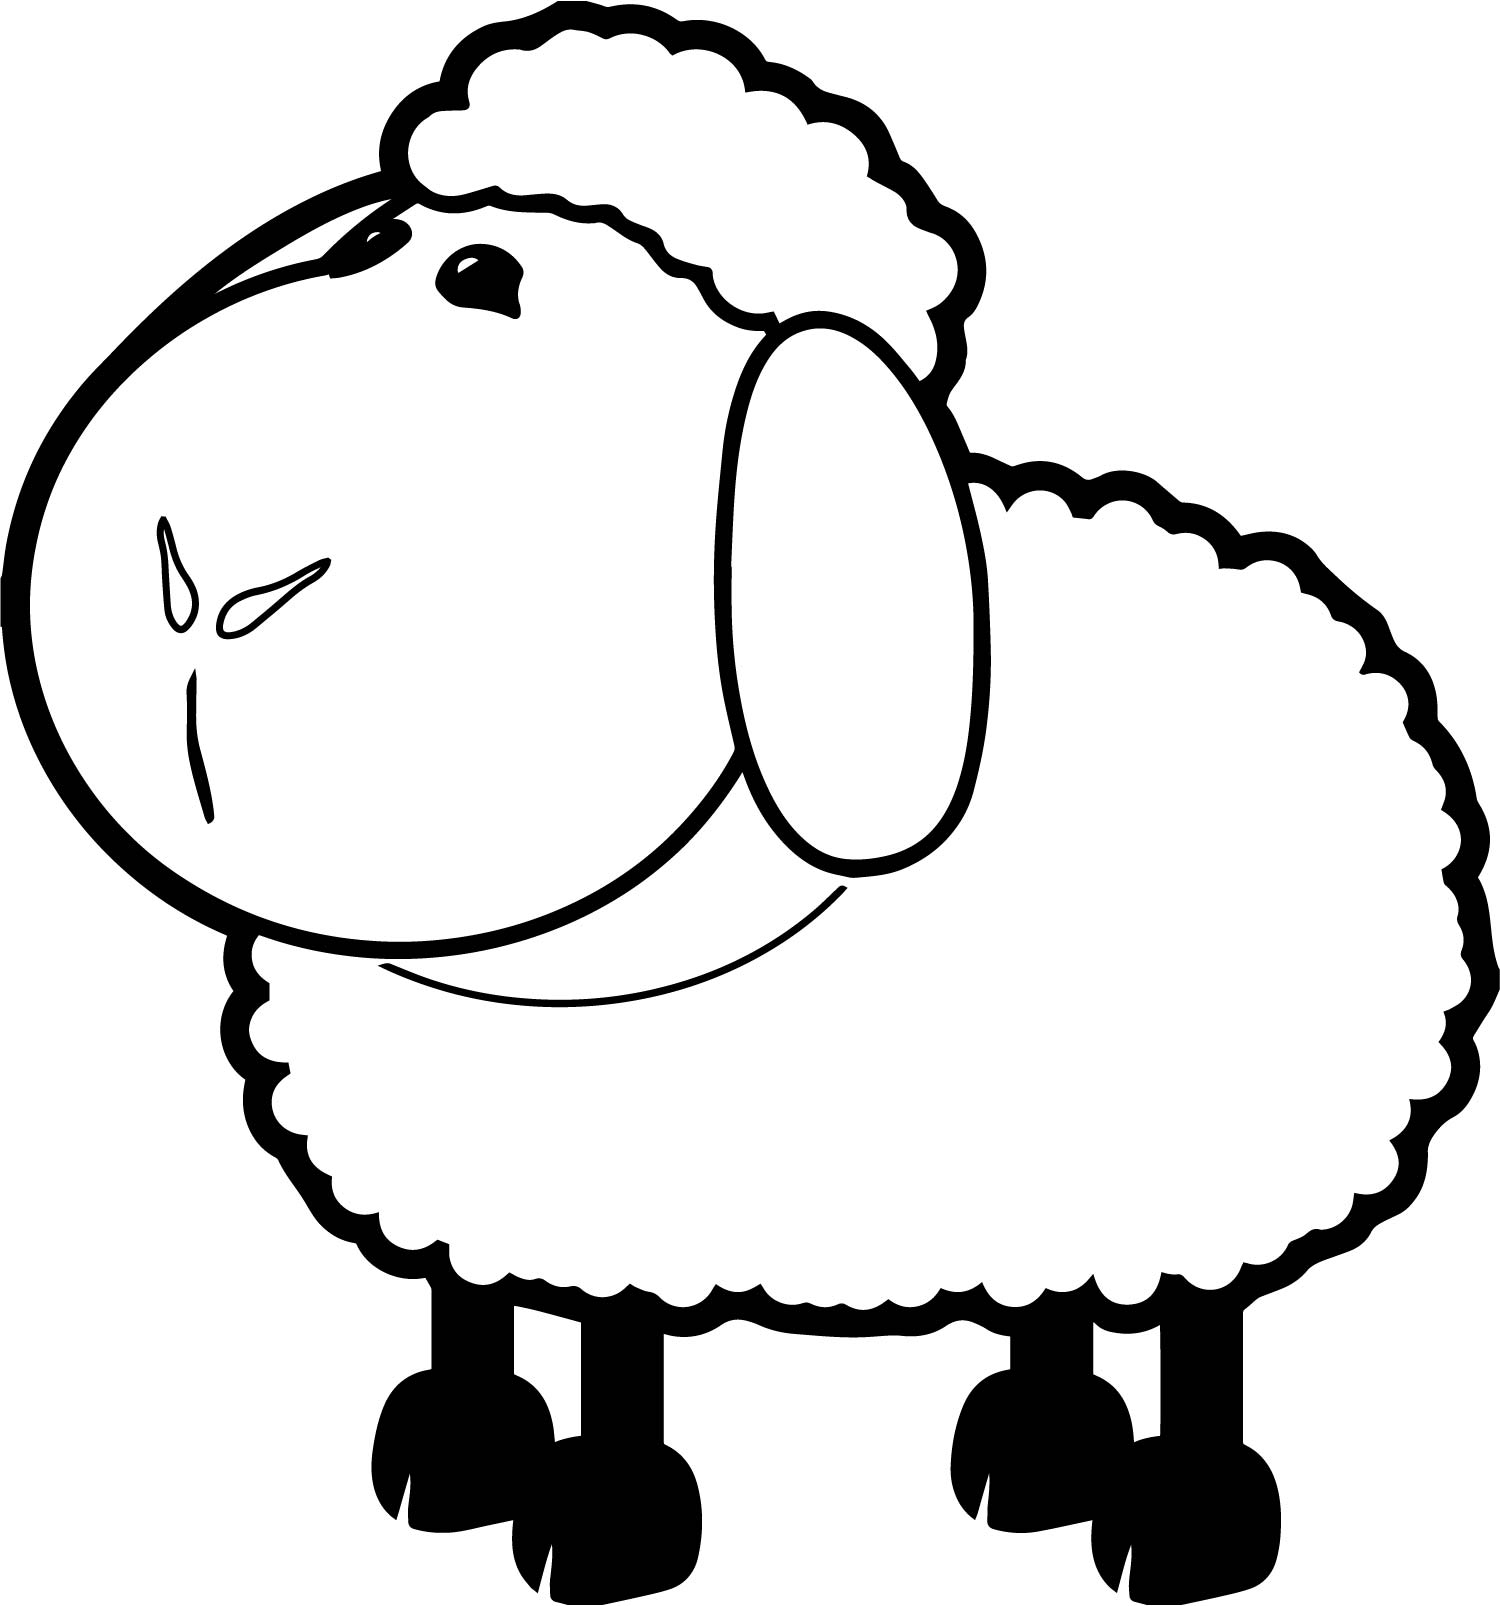 sheep coloring page free sheep online coloring. sheep coloring pages ...